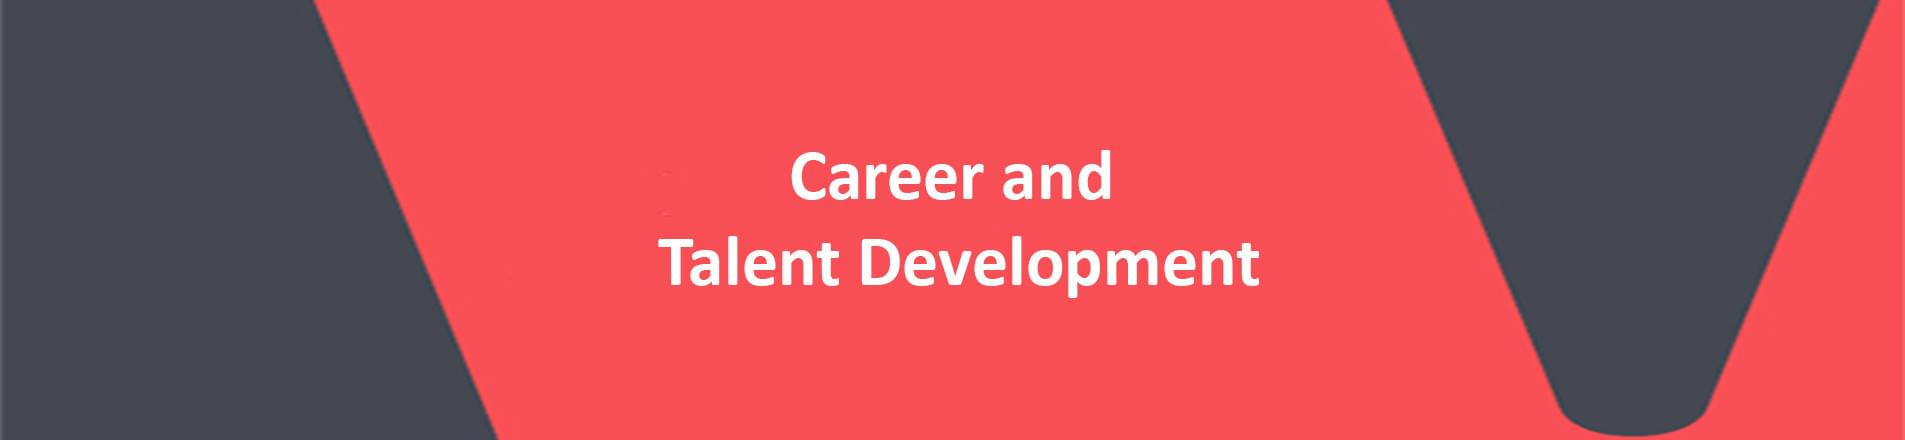 Image of the words career and talent development on a red background